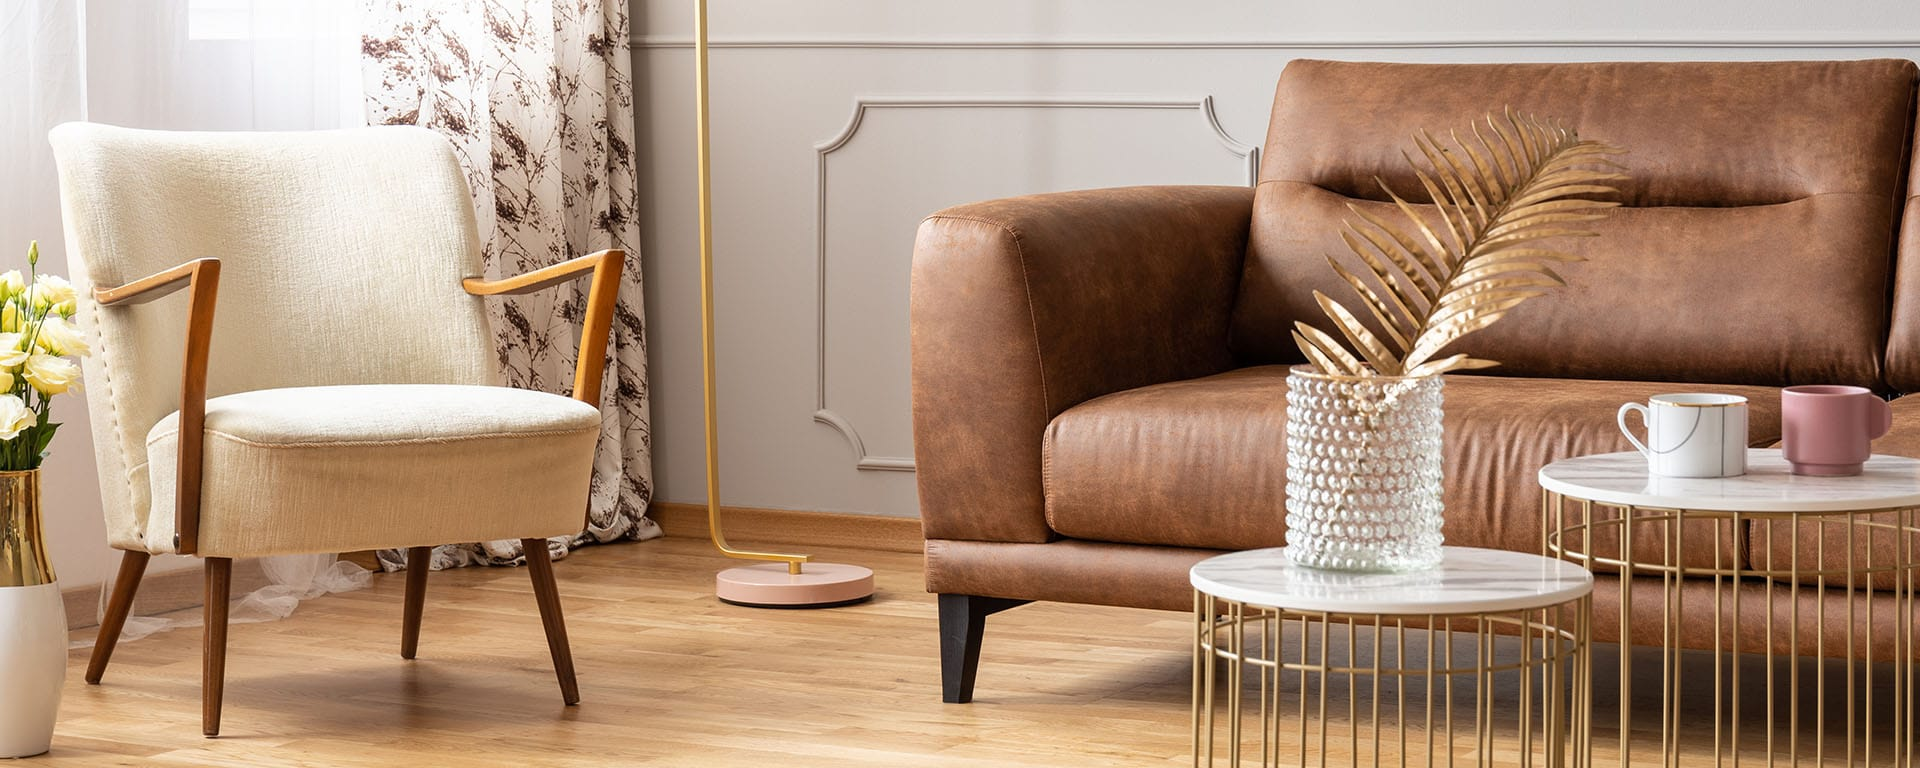 Panoramic view of living room with two small coffee tables, vintage armchair and brown leather sofa, real photo